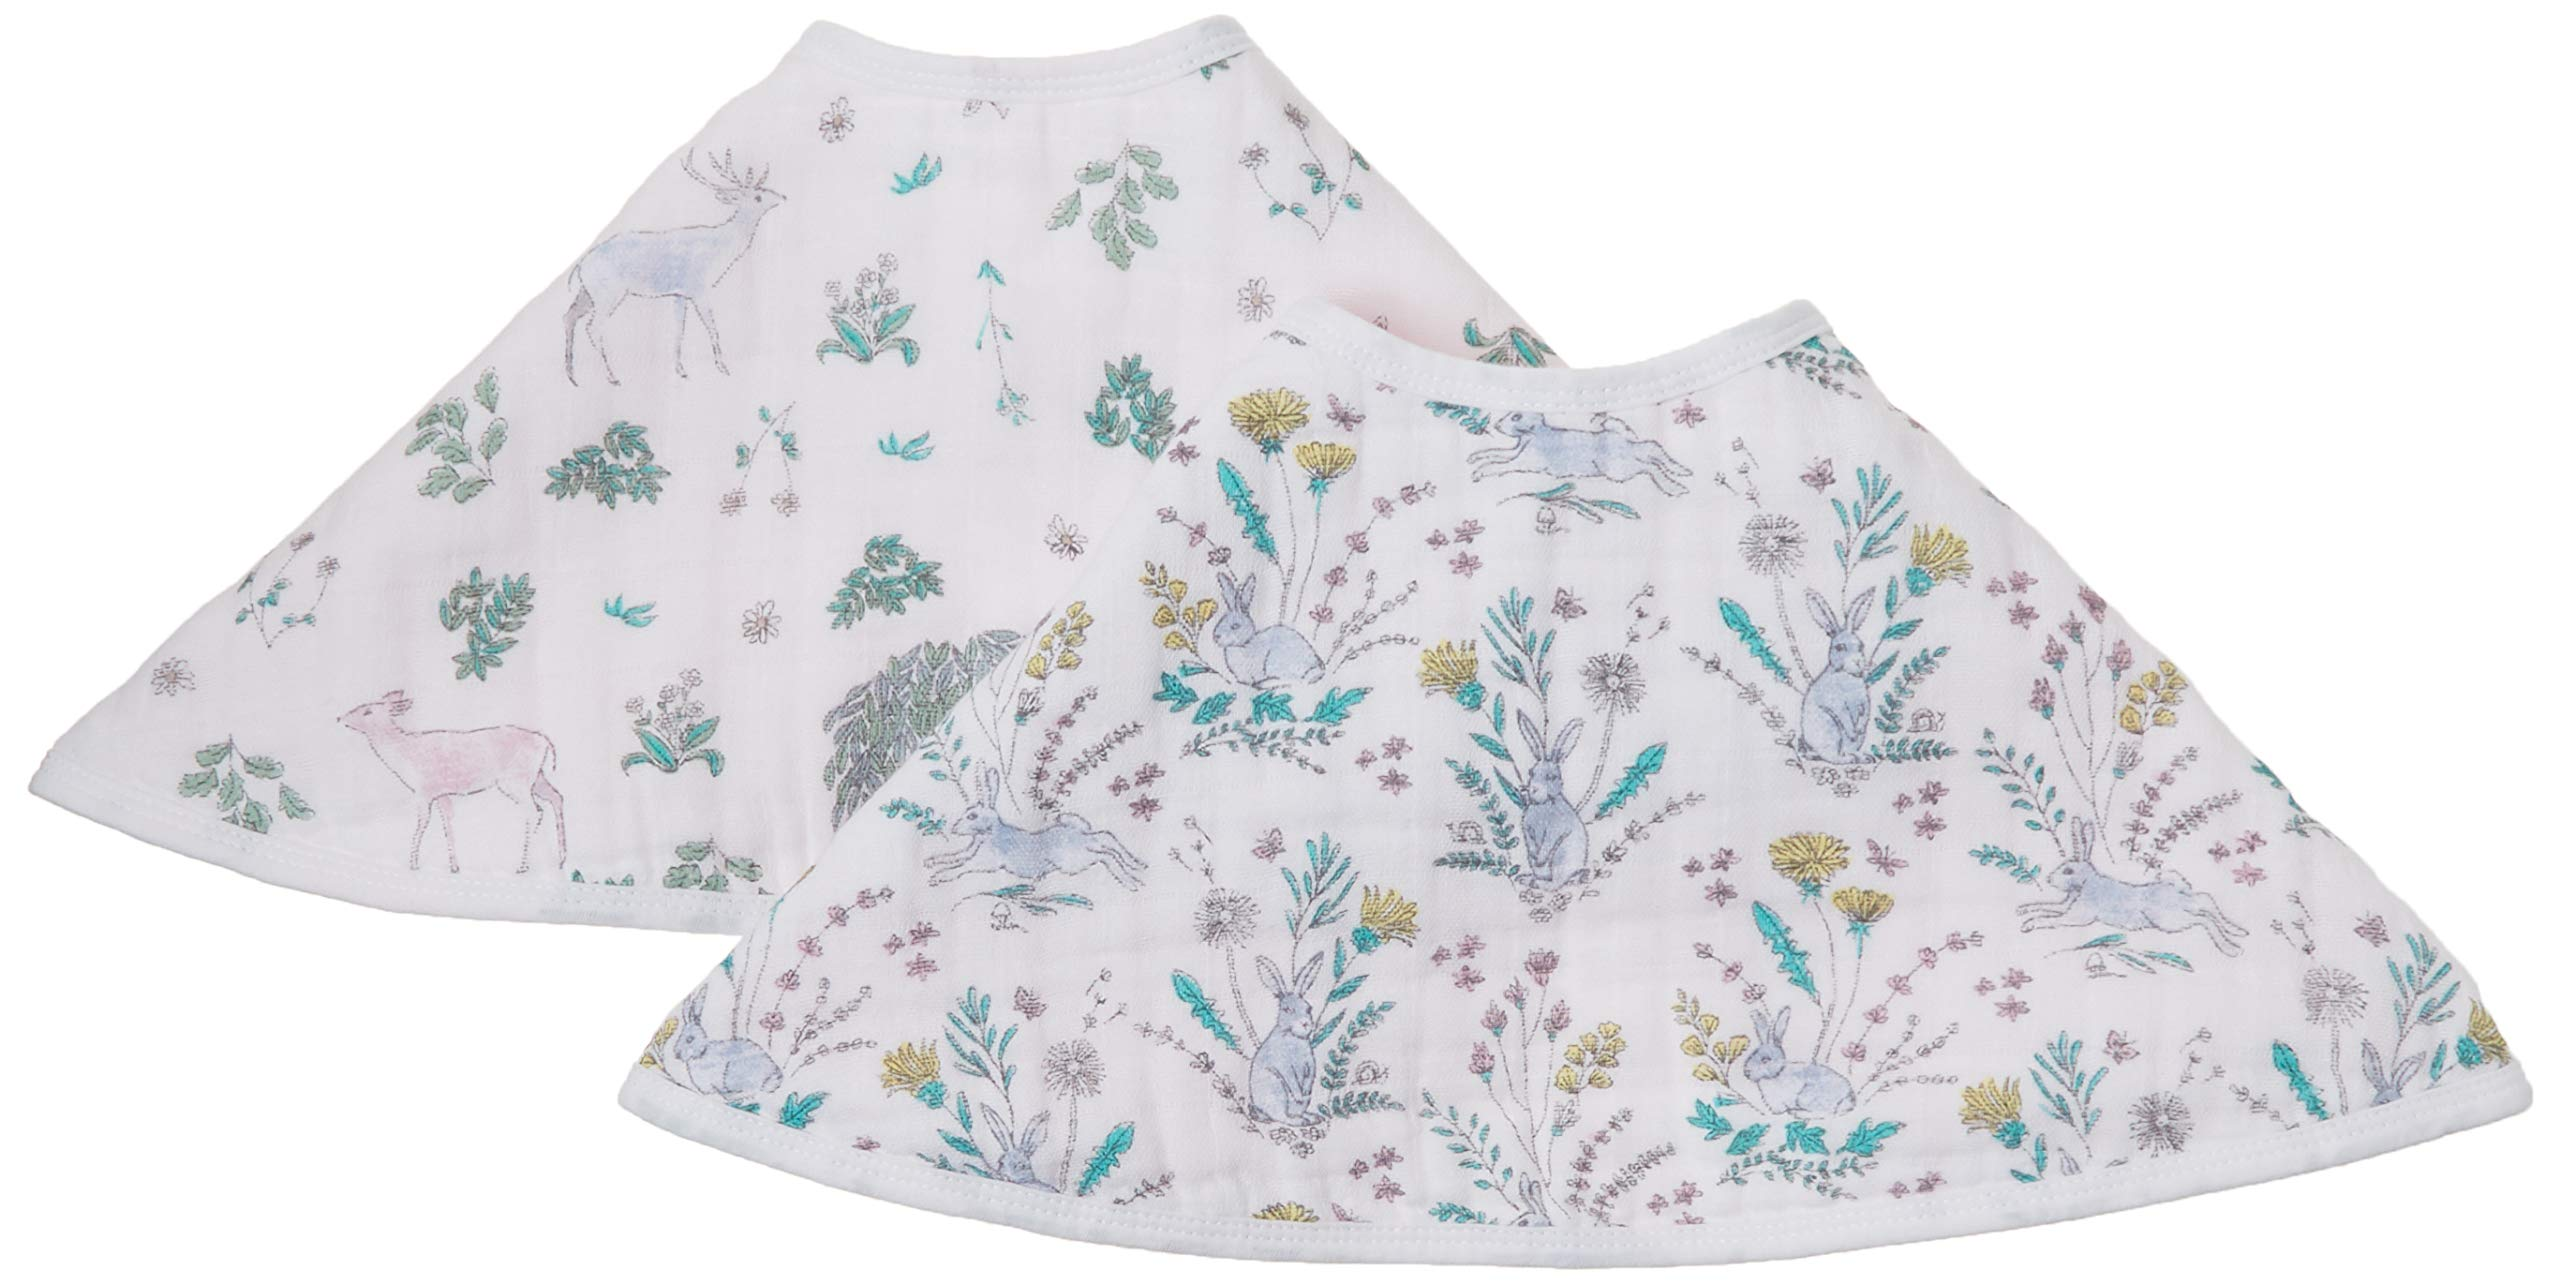 """aden + anais Burpy Bib, 100% Cotton Muslin, Soft Absorbent 4 Layers, Multi-Use Burp Cloth and Bib, 22.5"""" X 11"""", 2 Pack,  Forest Fantasy"""